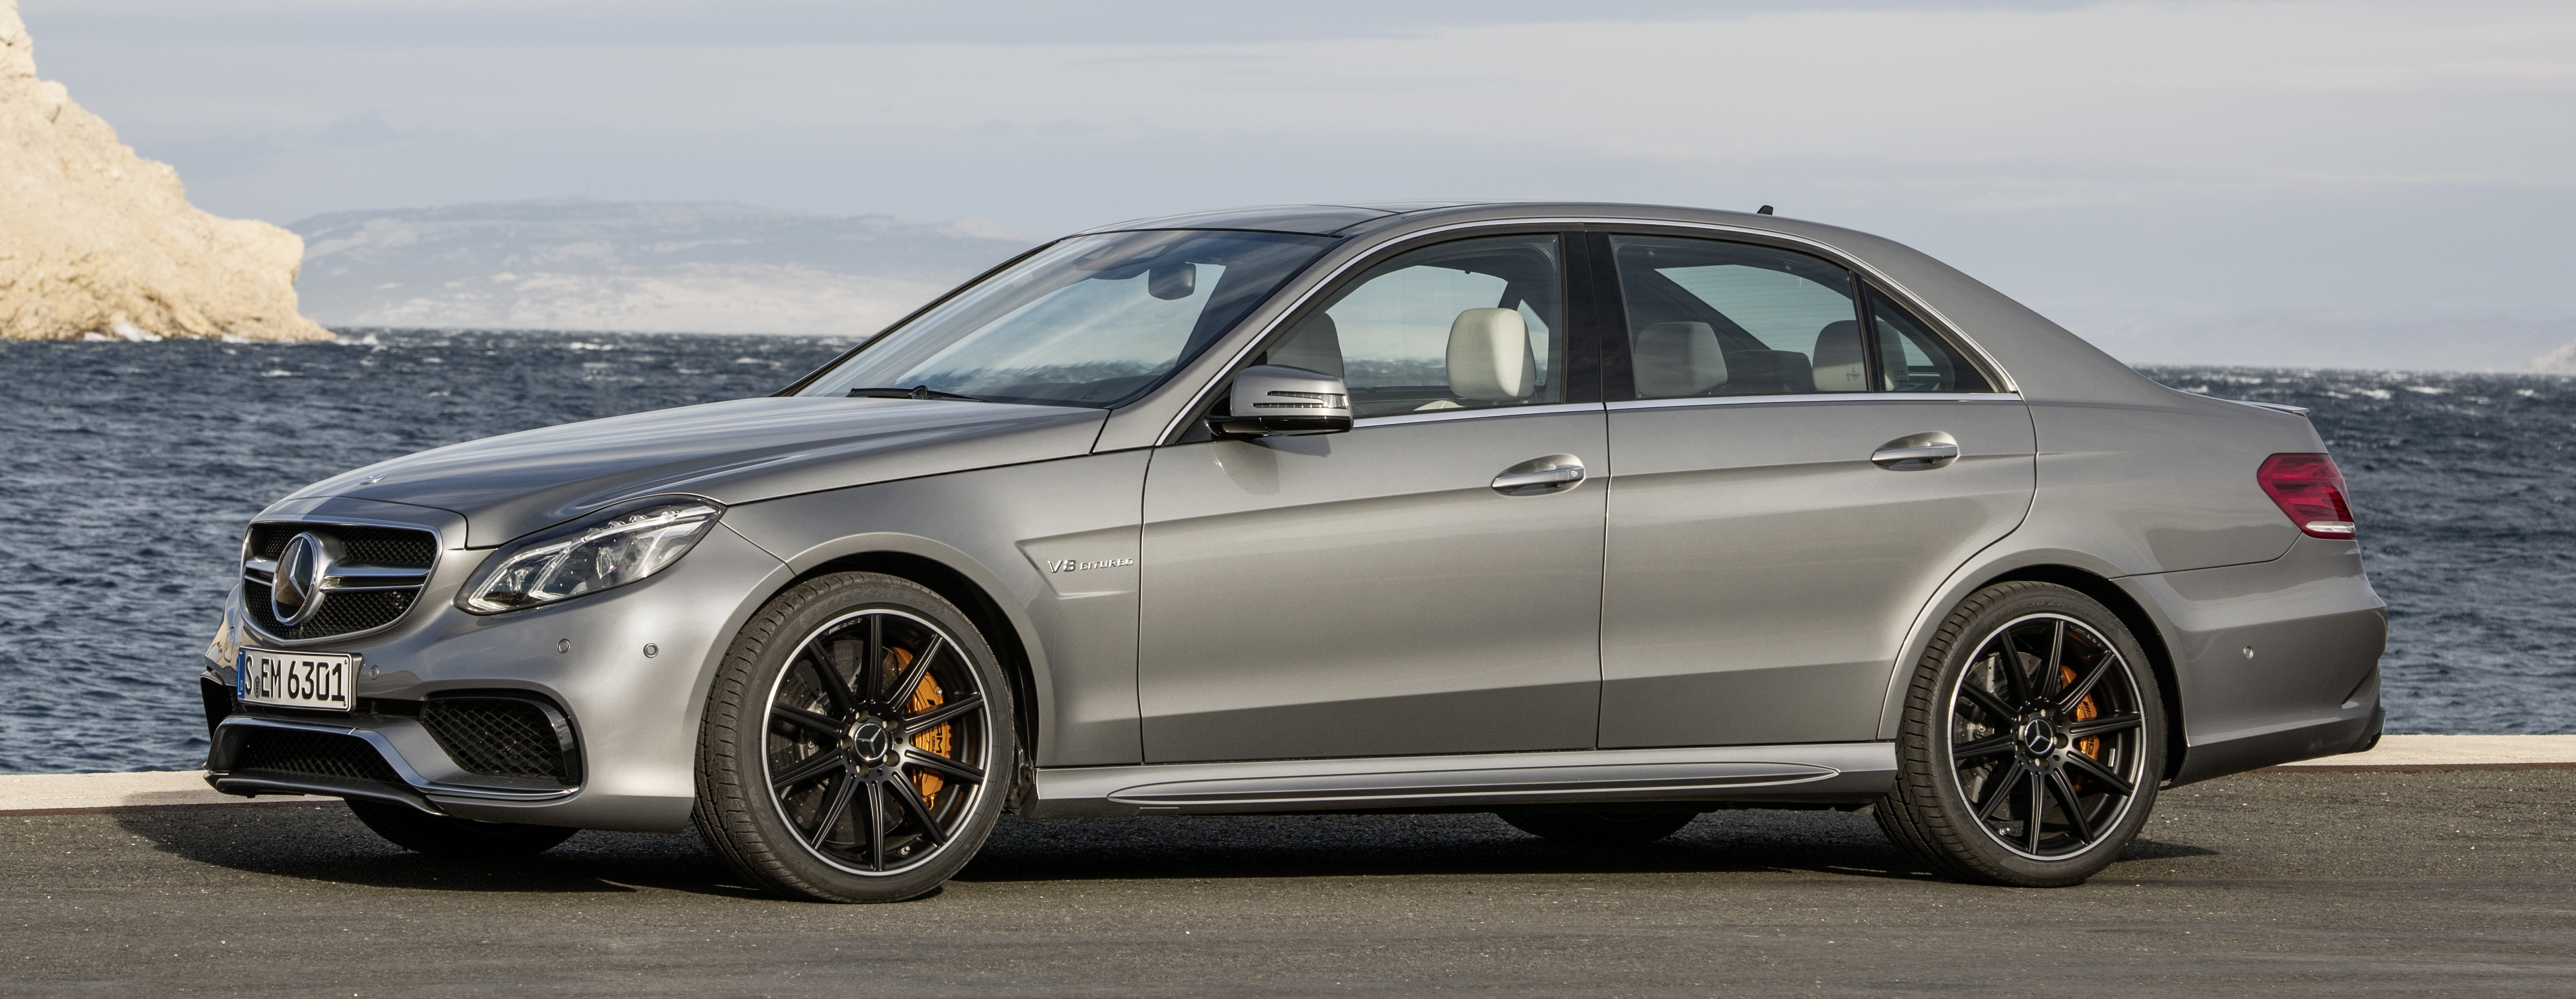 W212 mercedes benz e63 amg facelift unveiled now with for Mercedes benz e63 amg s 4matic